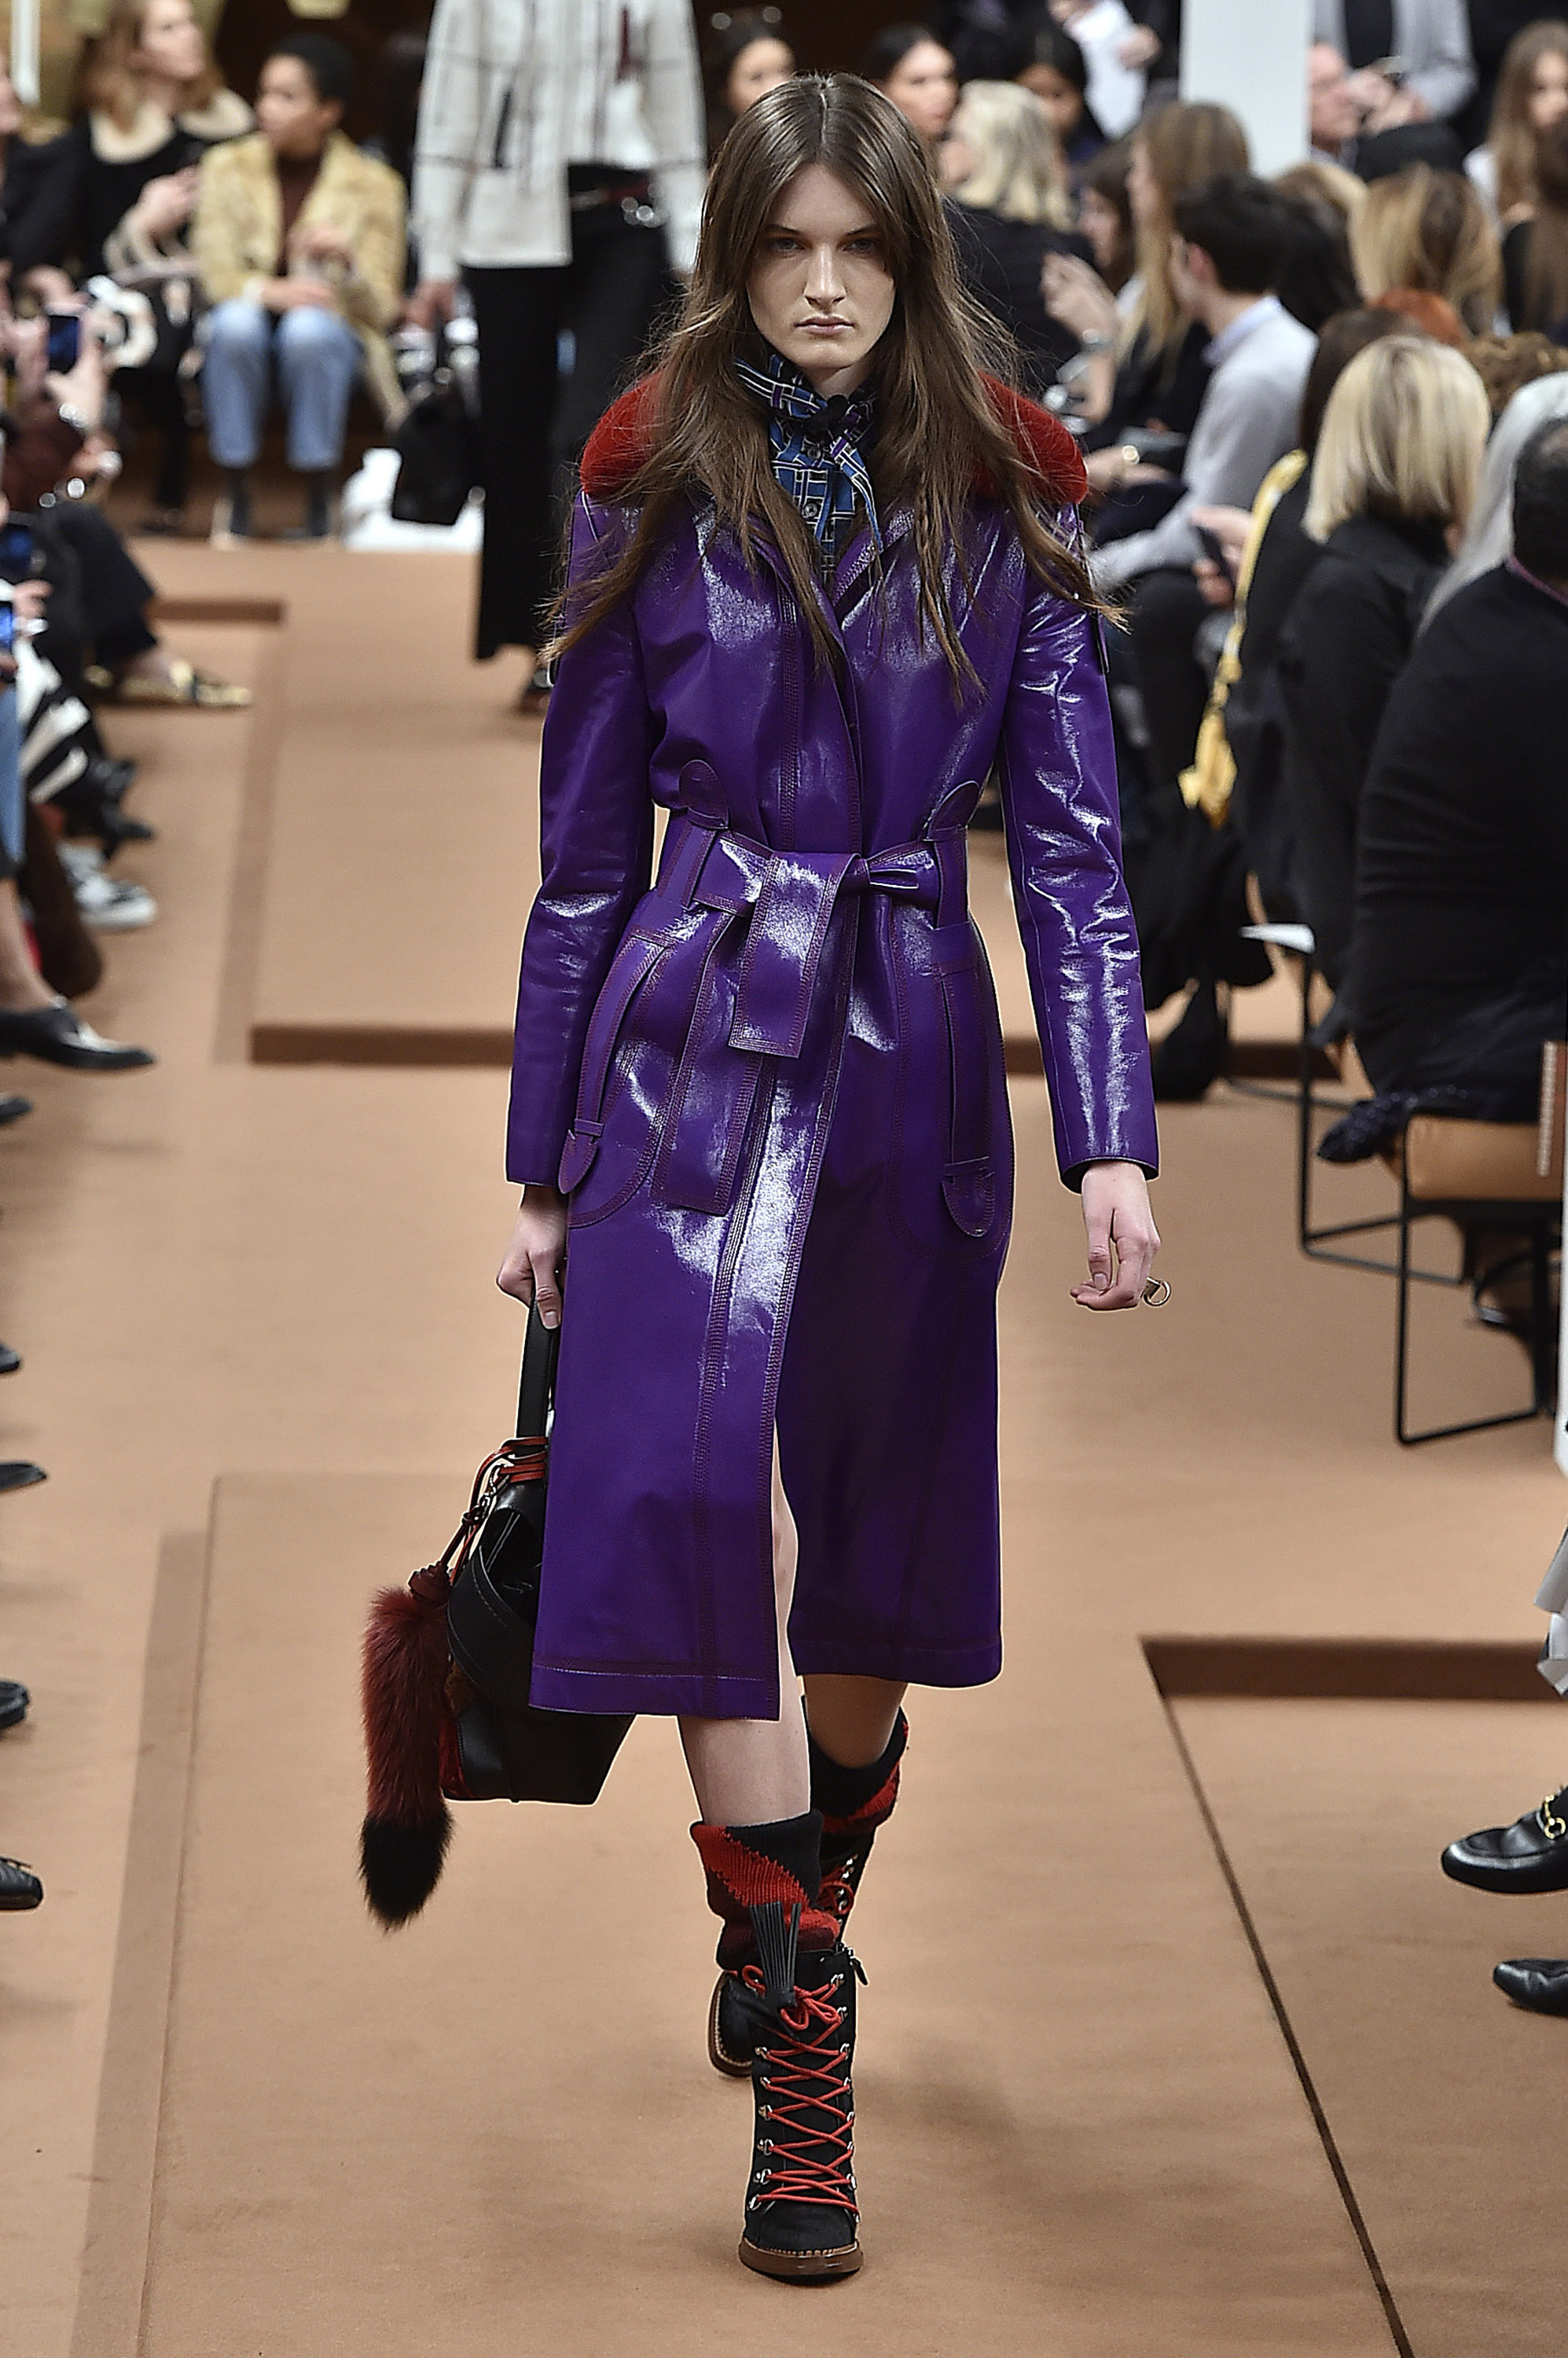 <p>For centuries it was the colour of royalty, power and wealth because of the rarity and cost of the dye required to make purple clothing. In fact, the shade was once so exclusive that Queen Elizabeth I forbade anyone but the royal family to wear it. </p><p>Now, purple has connotations that run the gamut from glam rock to the occult. It's a truly magical shade - use its powers wisely.</p>